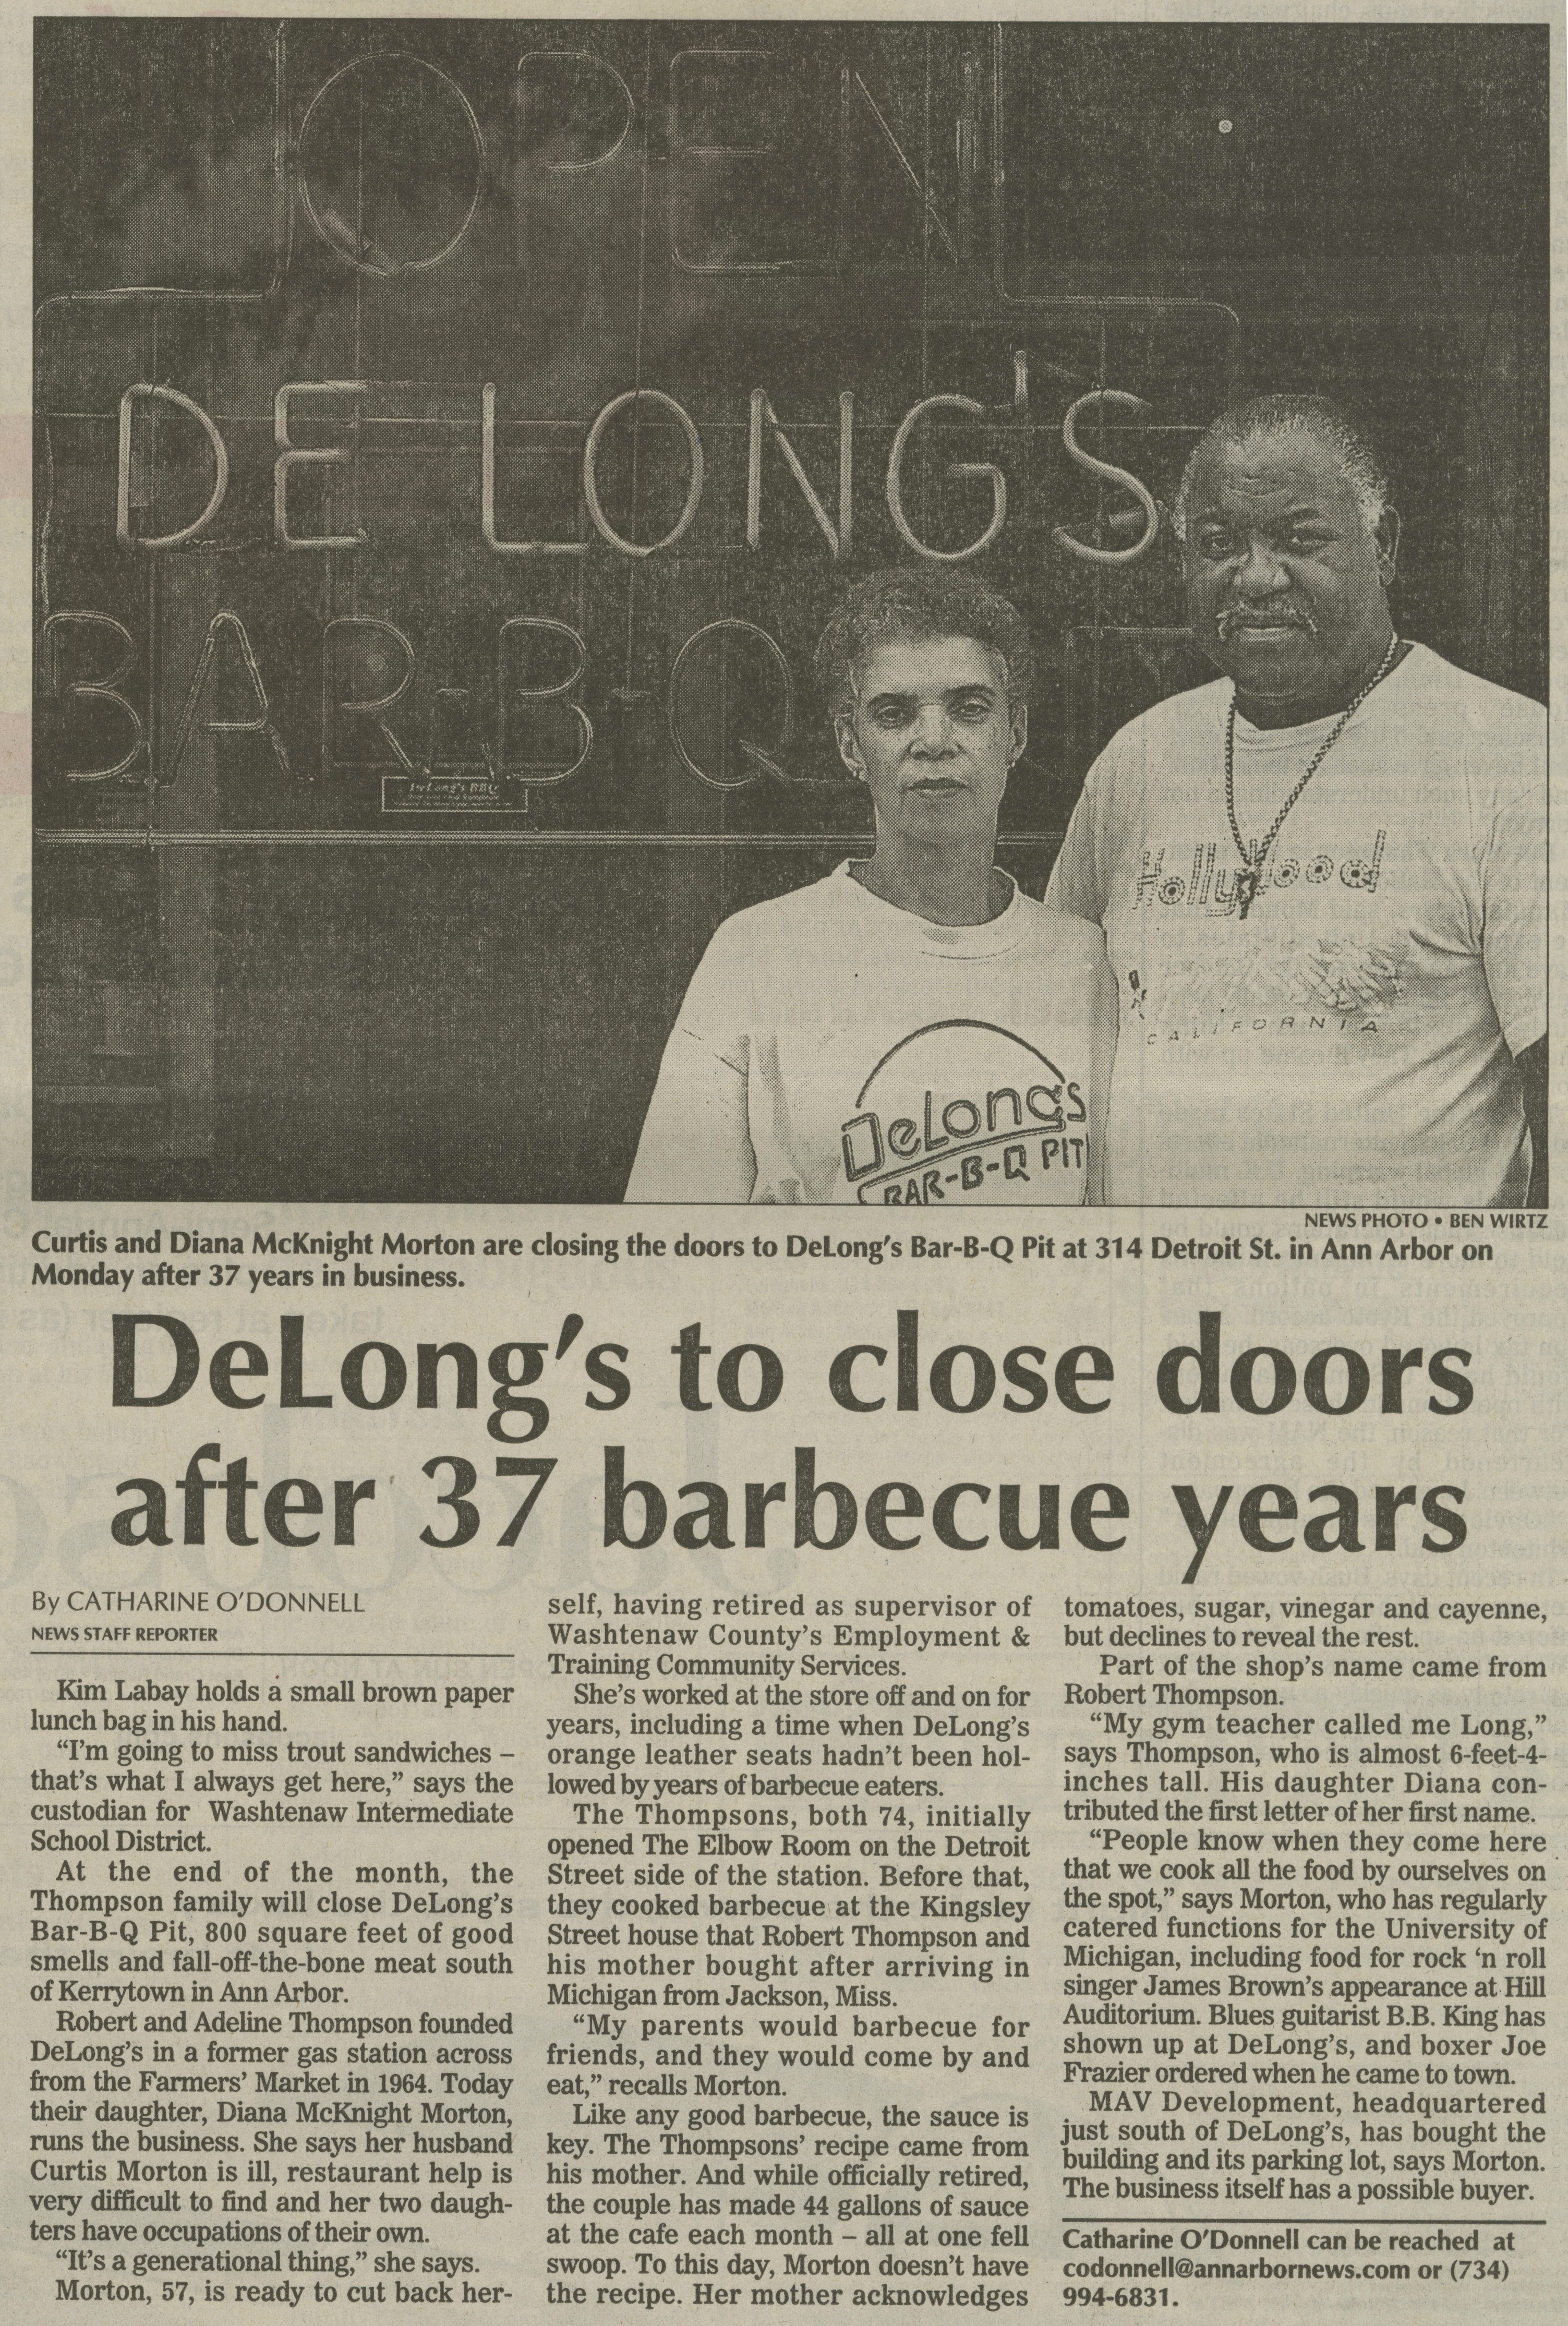 DeLong's to close doors after 37 barbecue years image